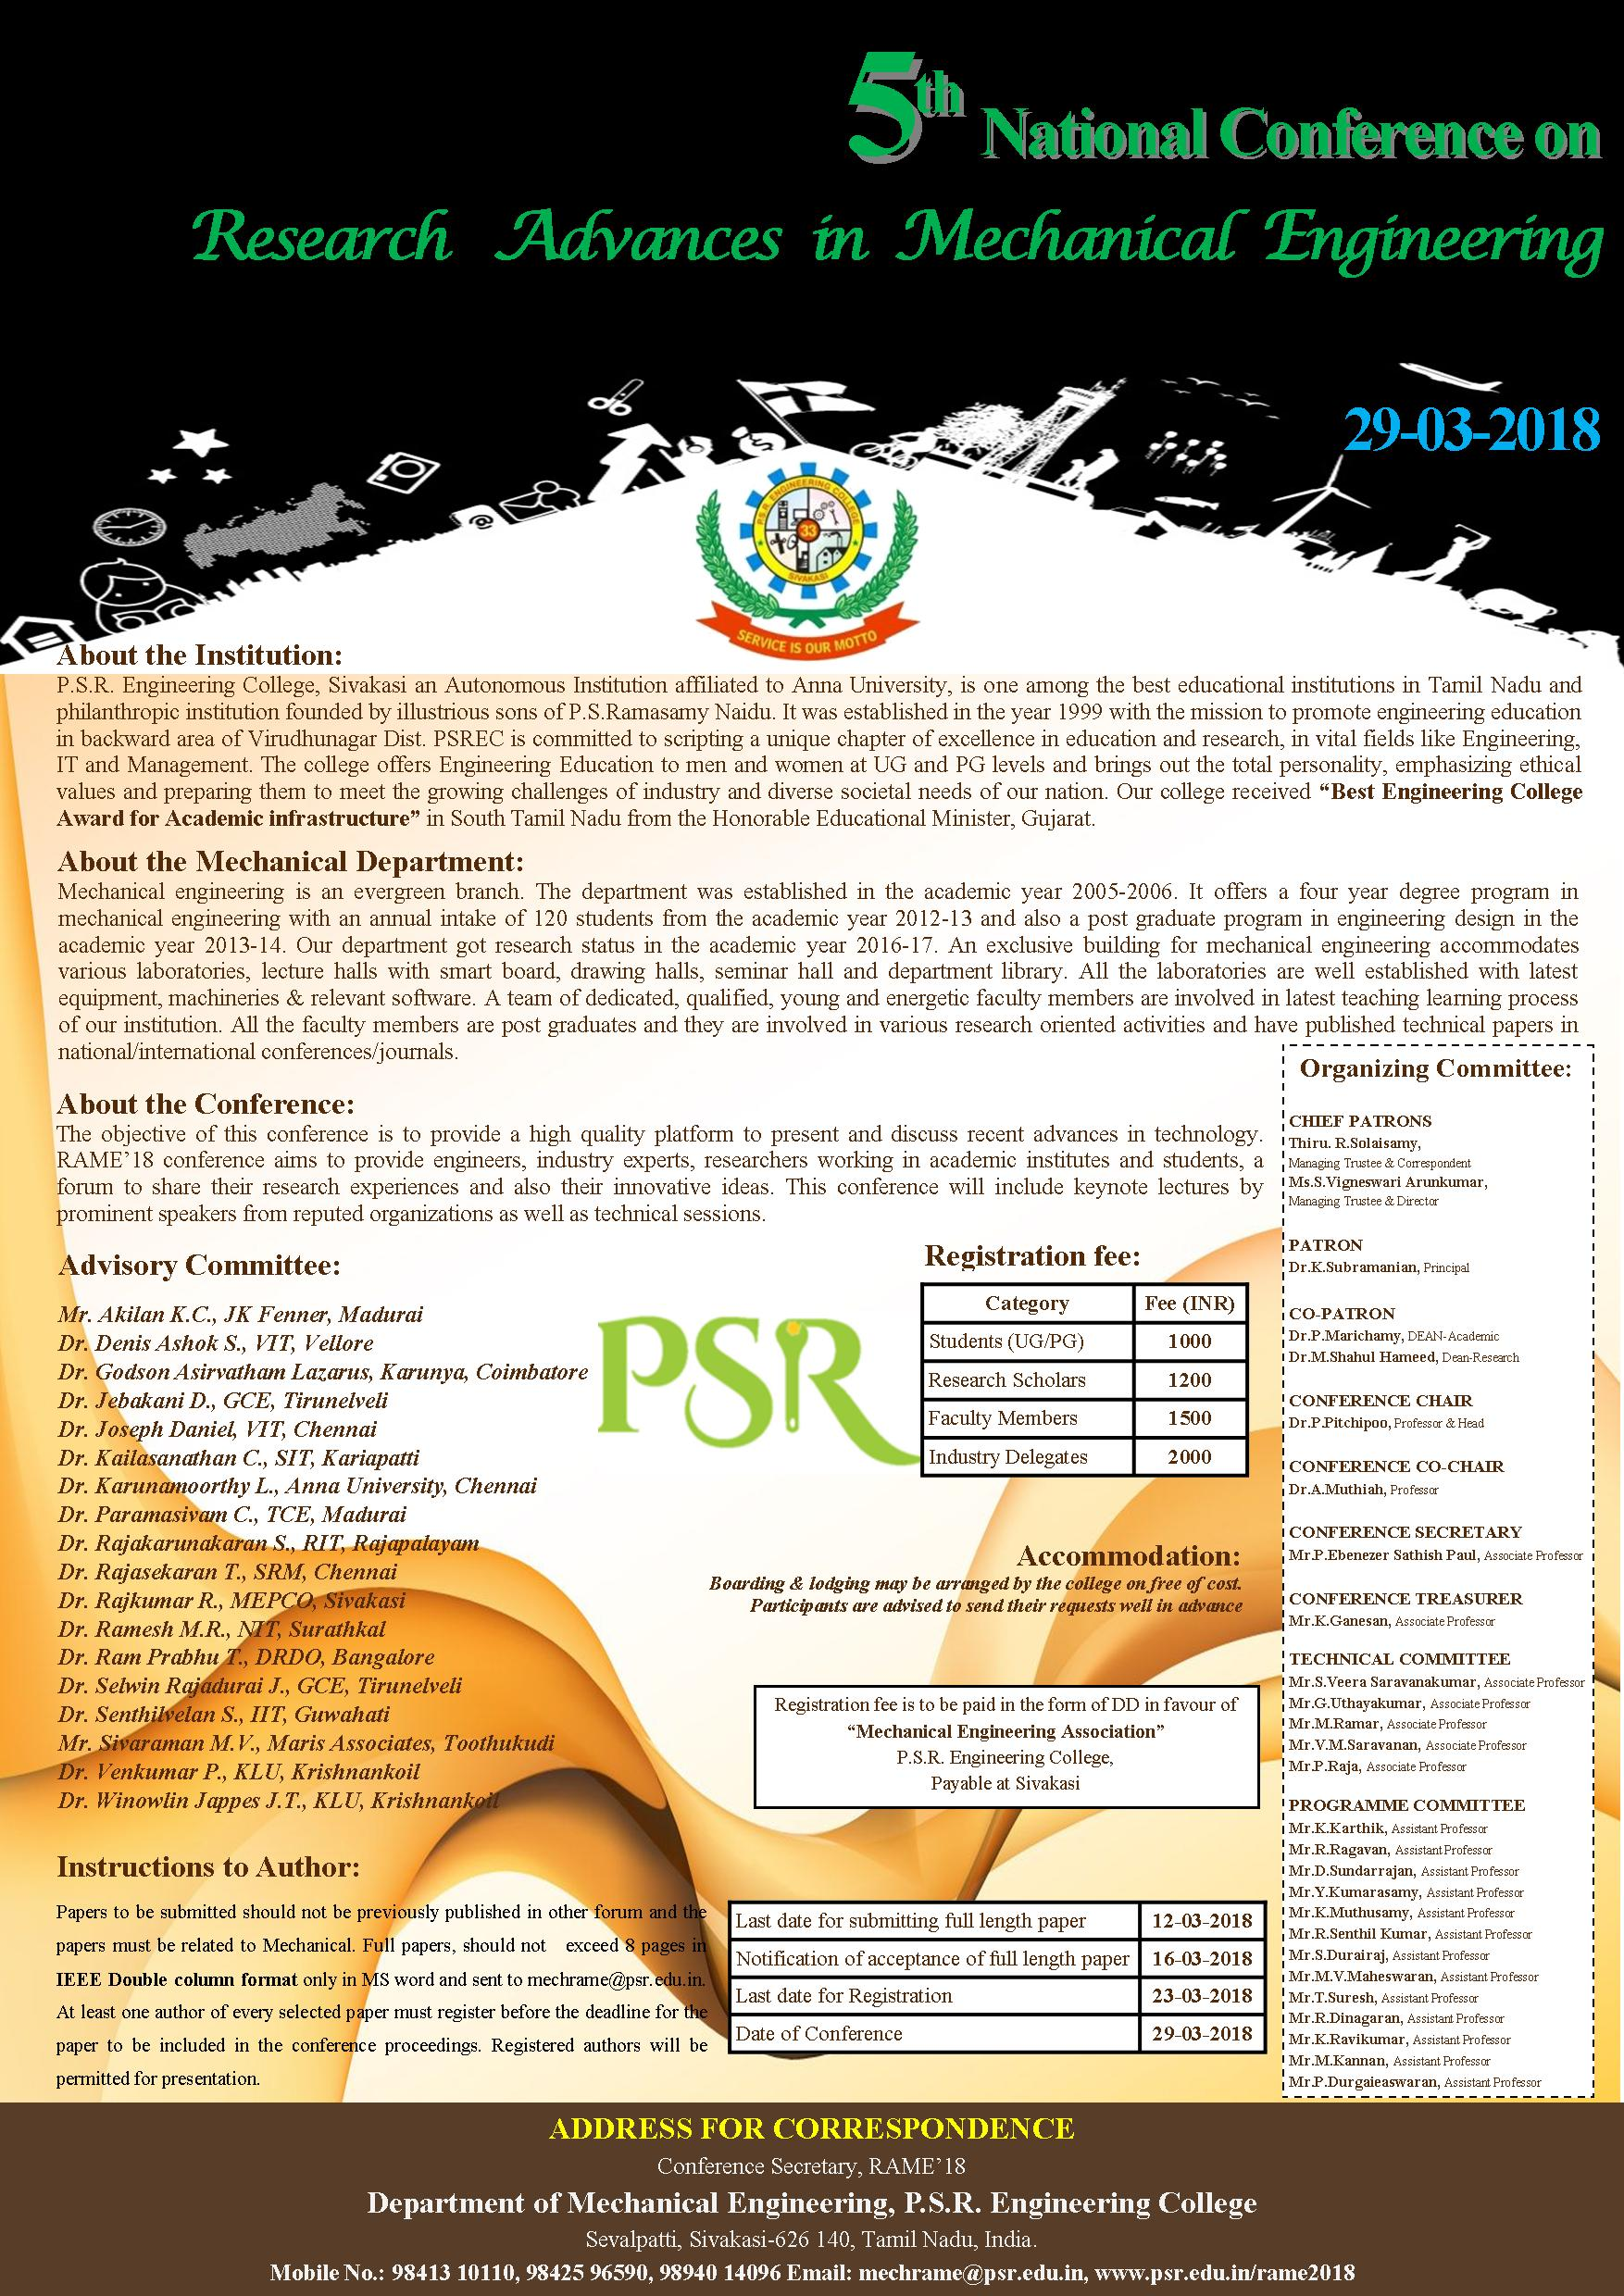 5th National Conference on Research Advances in Mechanical Engineering-RAME'18, Virudhunagar, Tamil Nadu, India